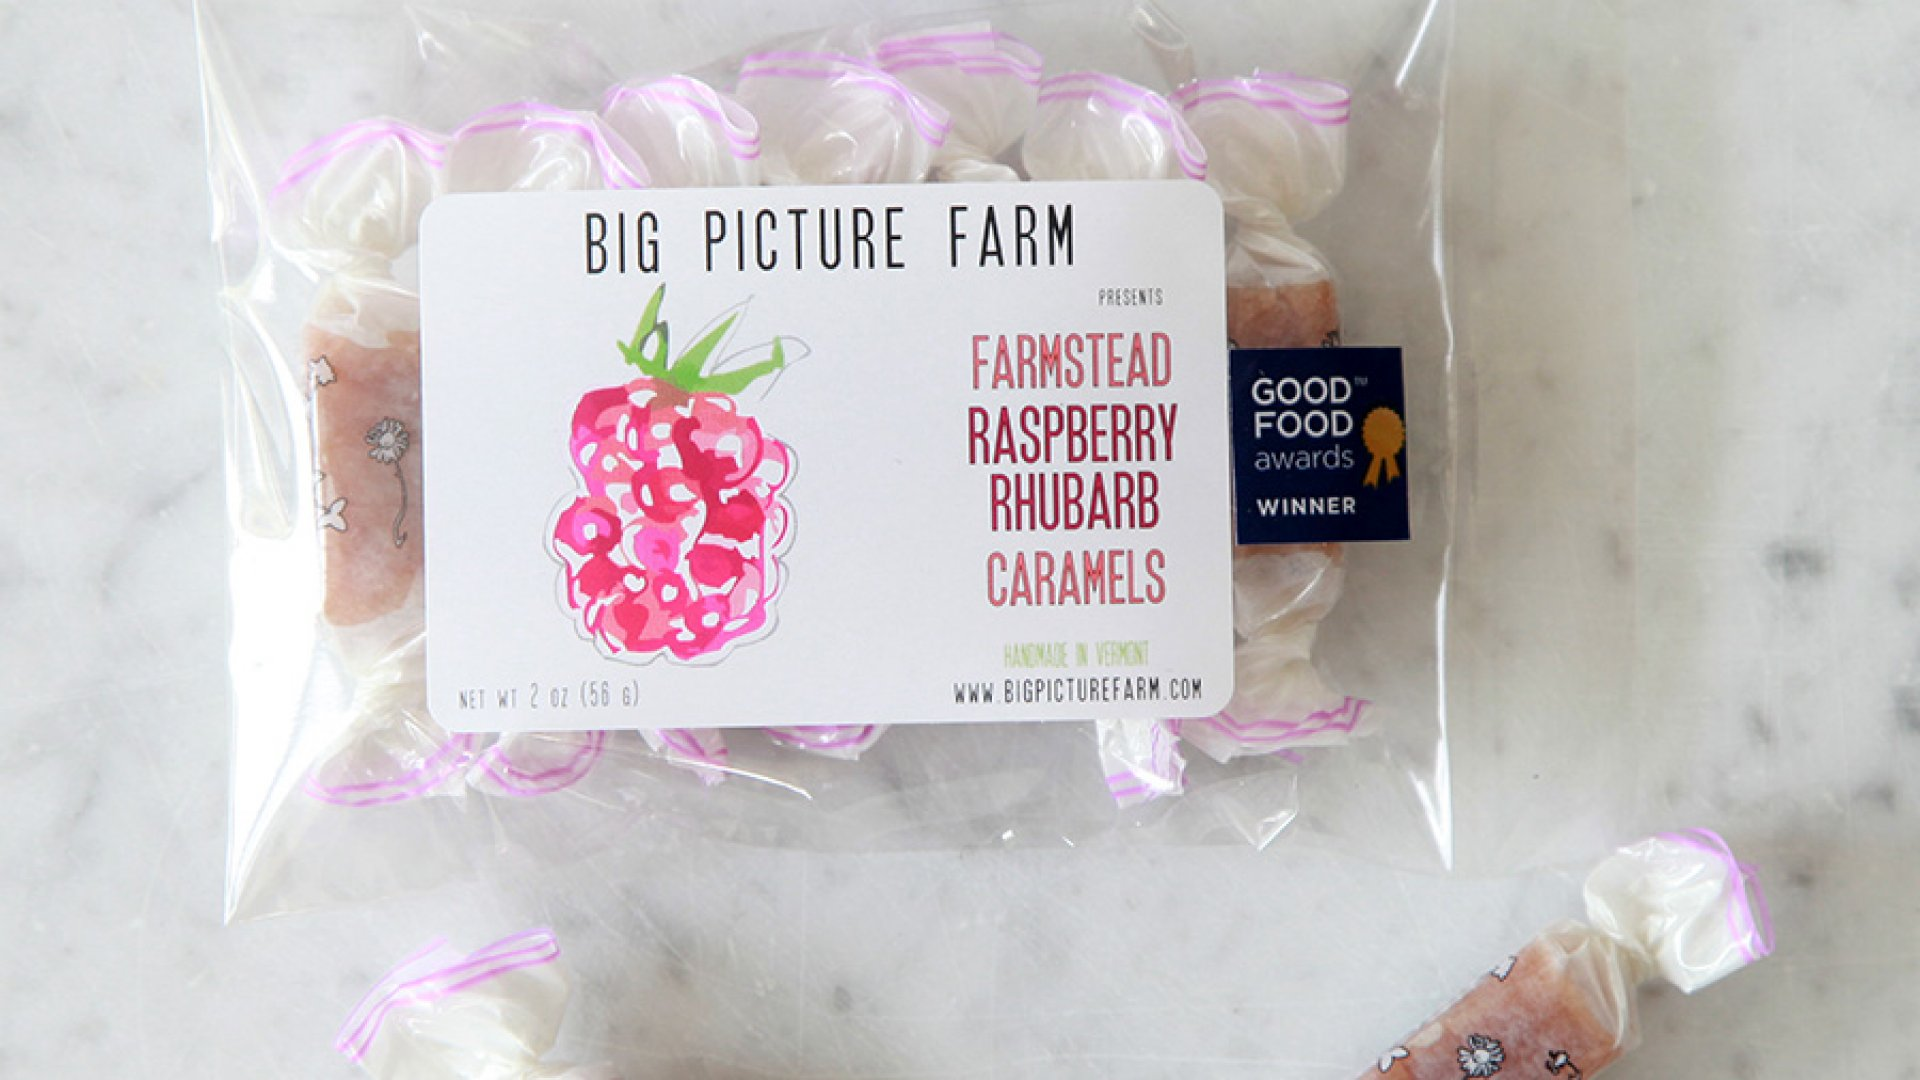 Raspberry Rhubarb Goat Milk Caramels from Big Picture Farm, the winner of the sofi™ Award for outstanding new product of 2015 at this summer's Fancy Food Show